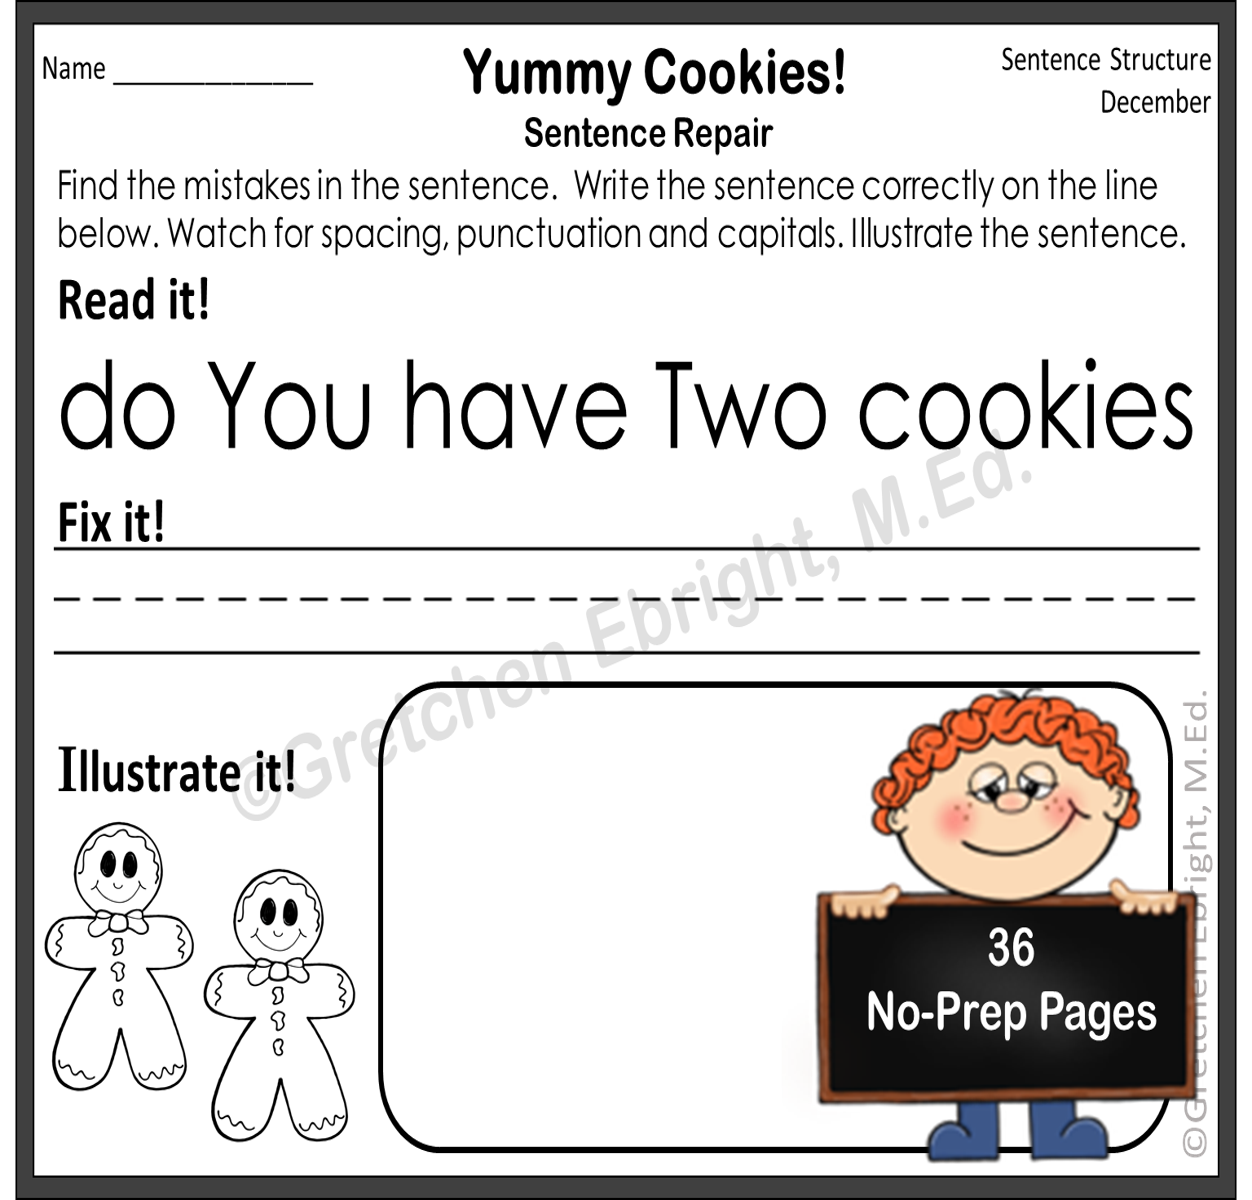 Sentence Repair Monthly Themed Sentence Editing Sheets 36